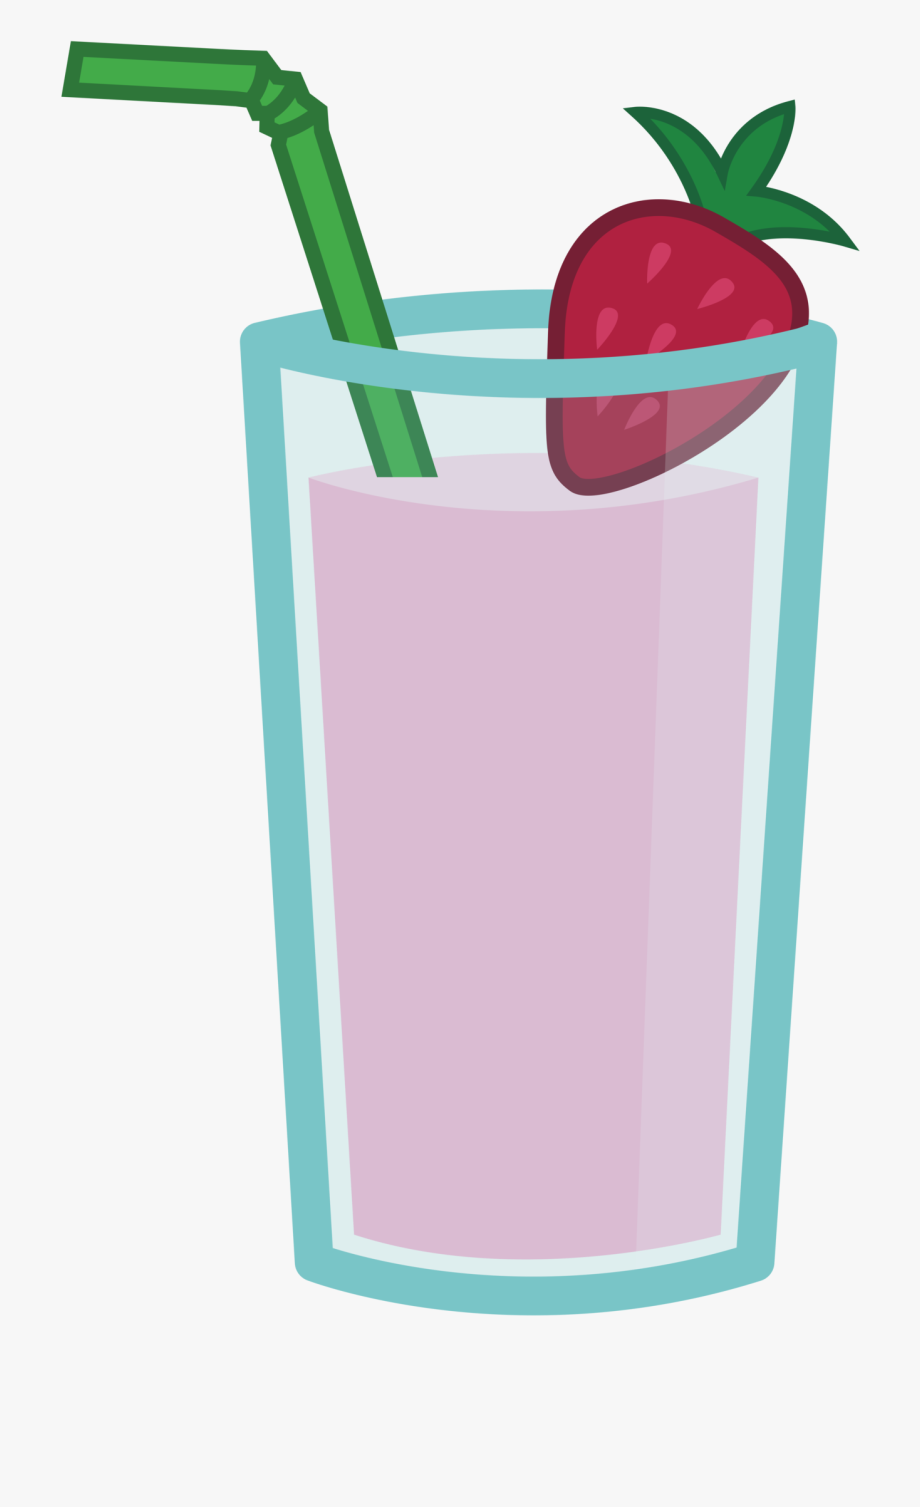 Drink Clipart Smoothie Cup Pencil And In Color Drink.